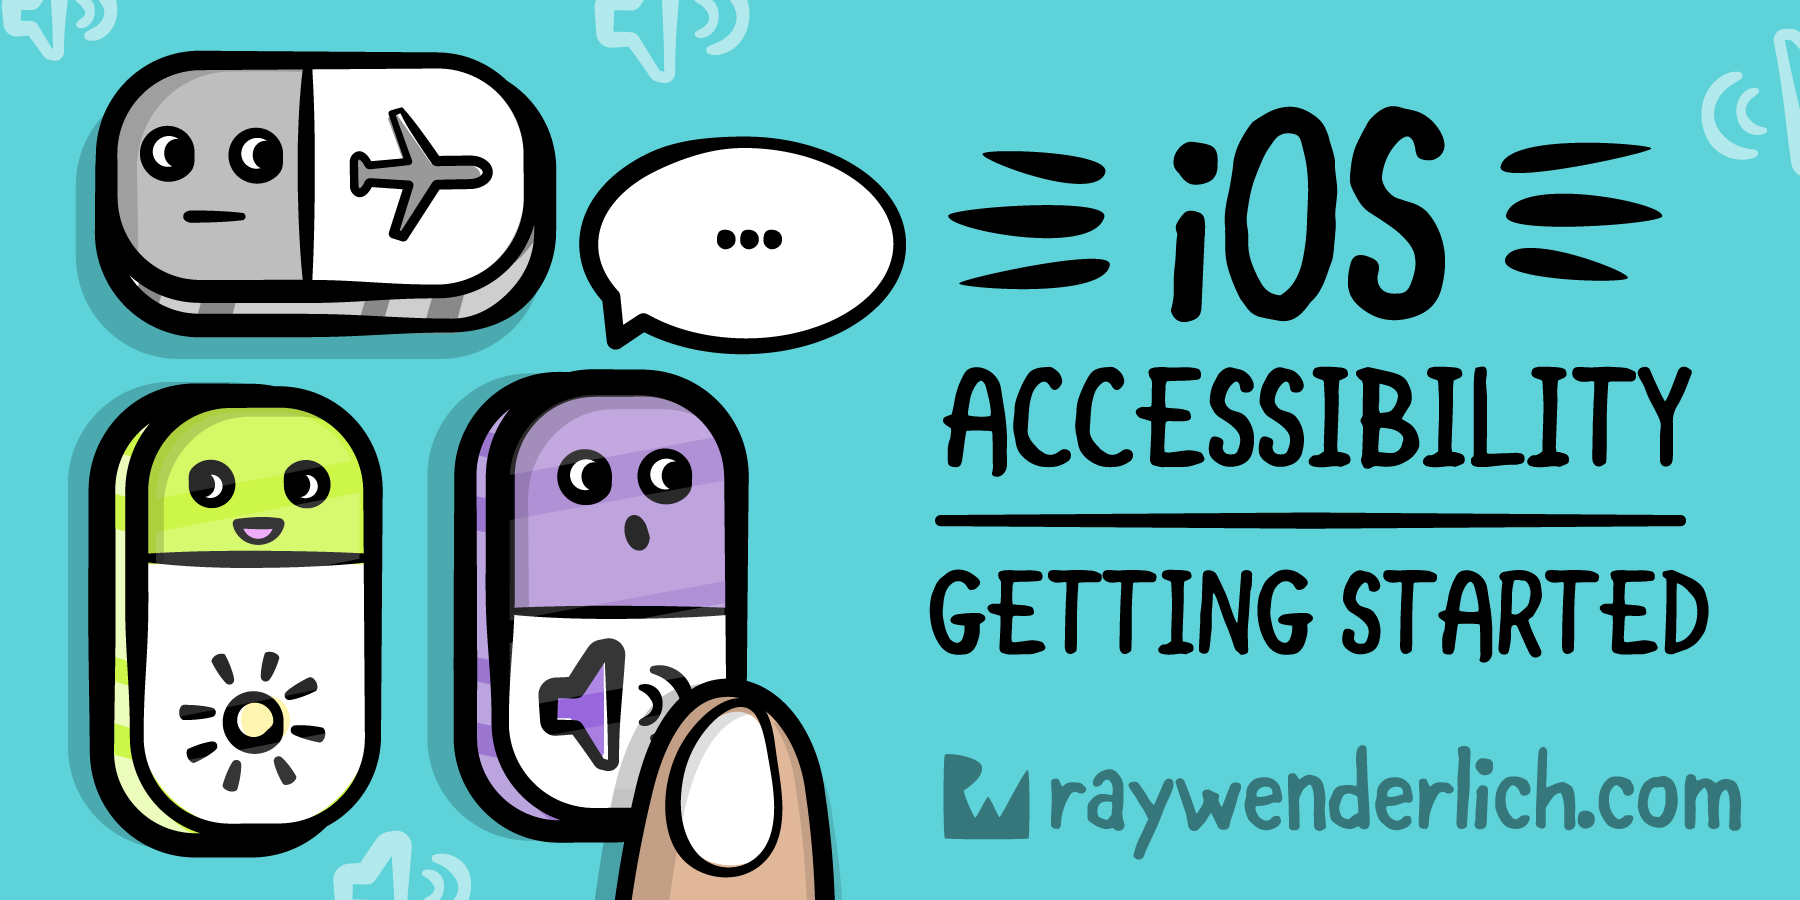 iOS Accessibility: Getting Started [FREE]